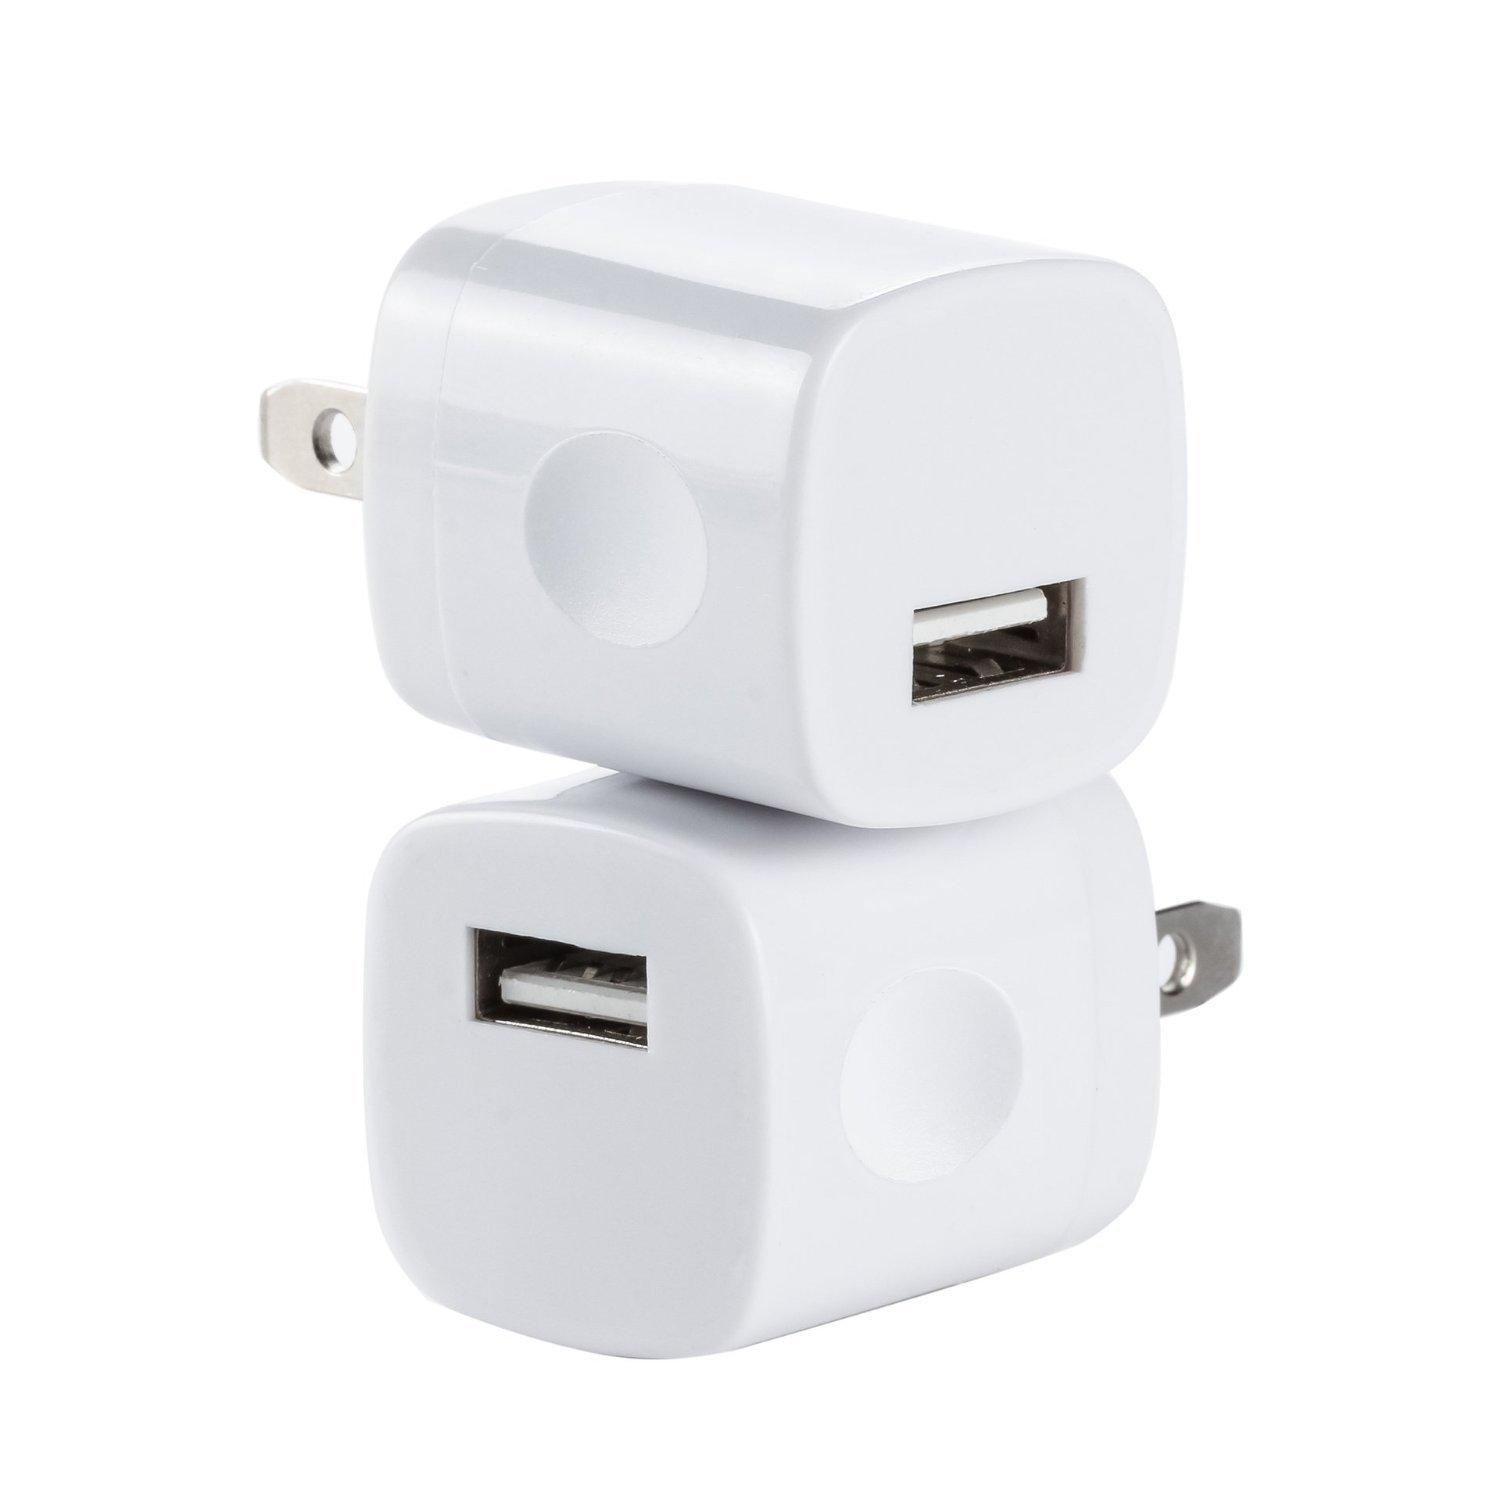 Omni INC 2PCS White Universal USB Port Colors USB AC/DC Power Adapter Home Wall Charger Plug